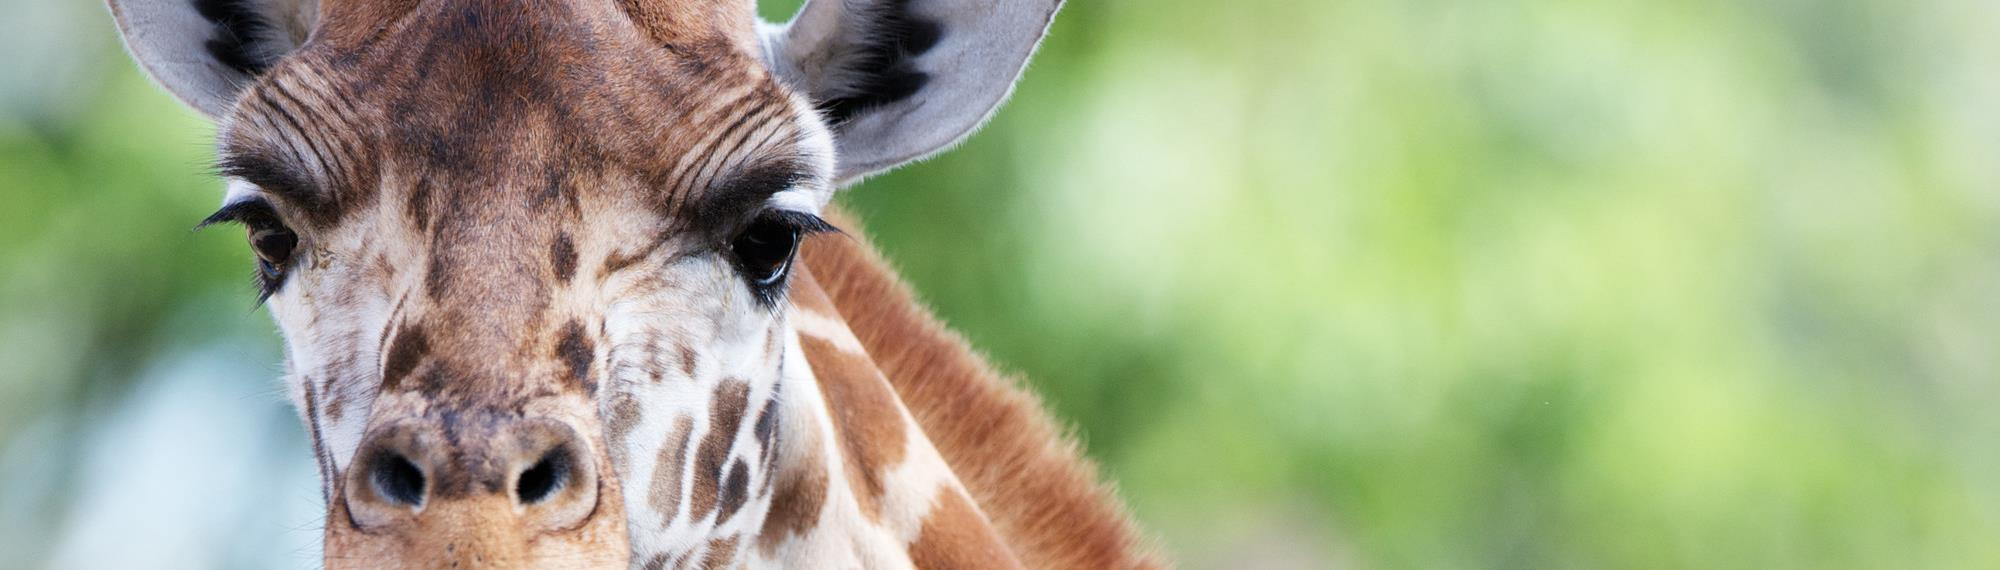 Close up face view of a Rothschild Giraffe. He is looking towards the camera with a green background.